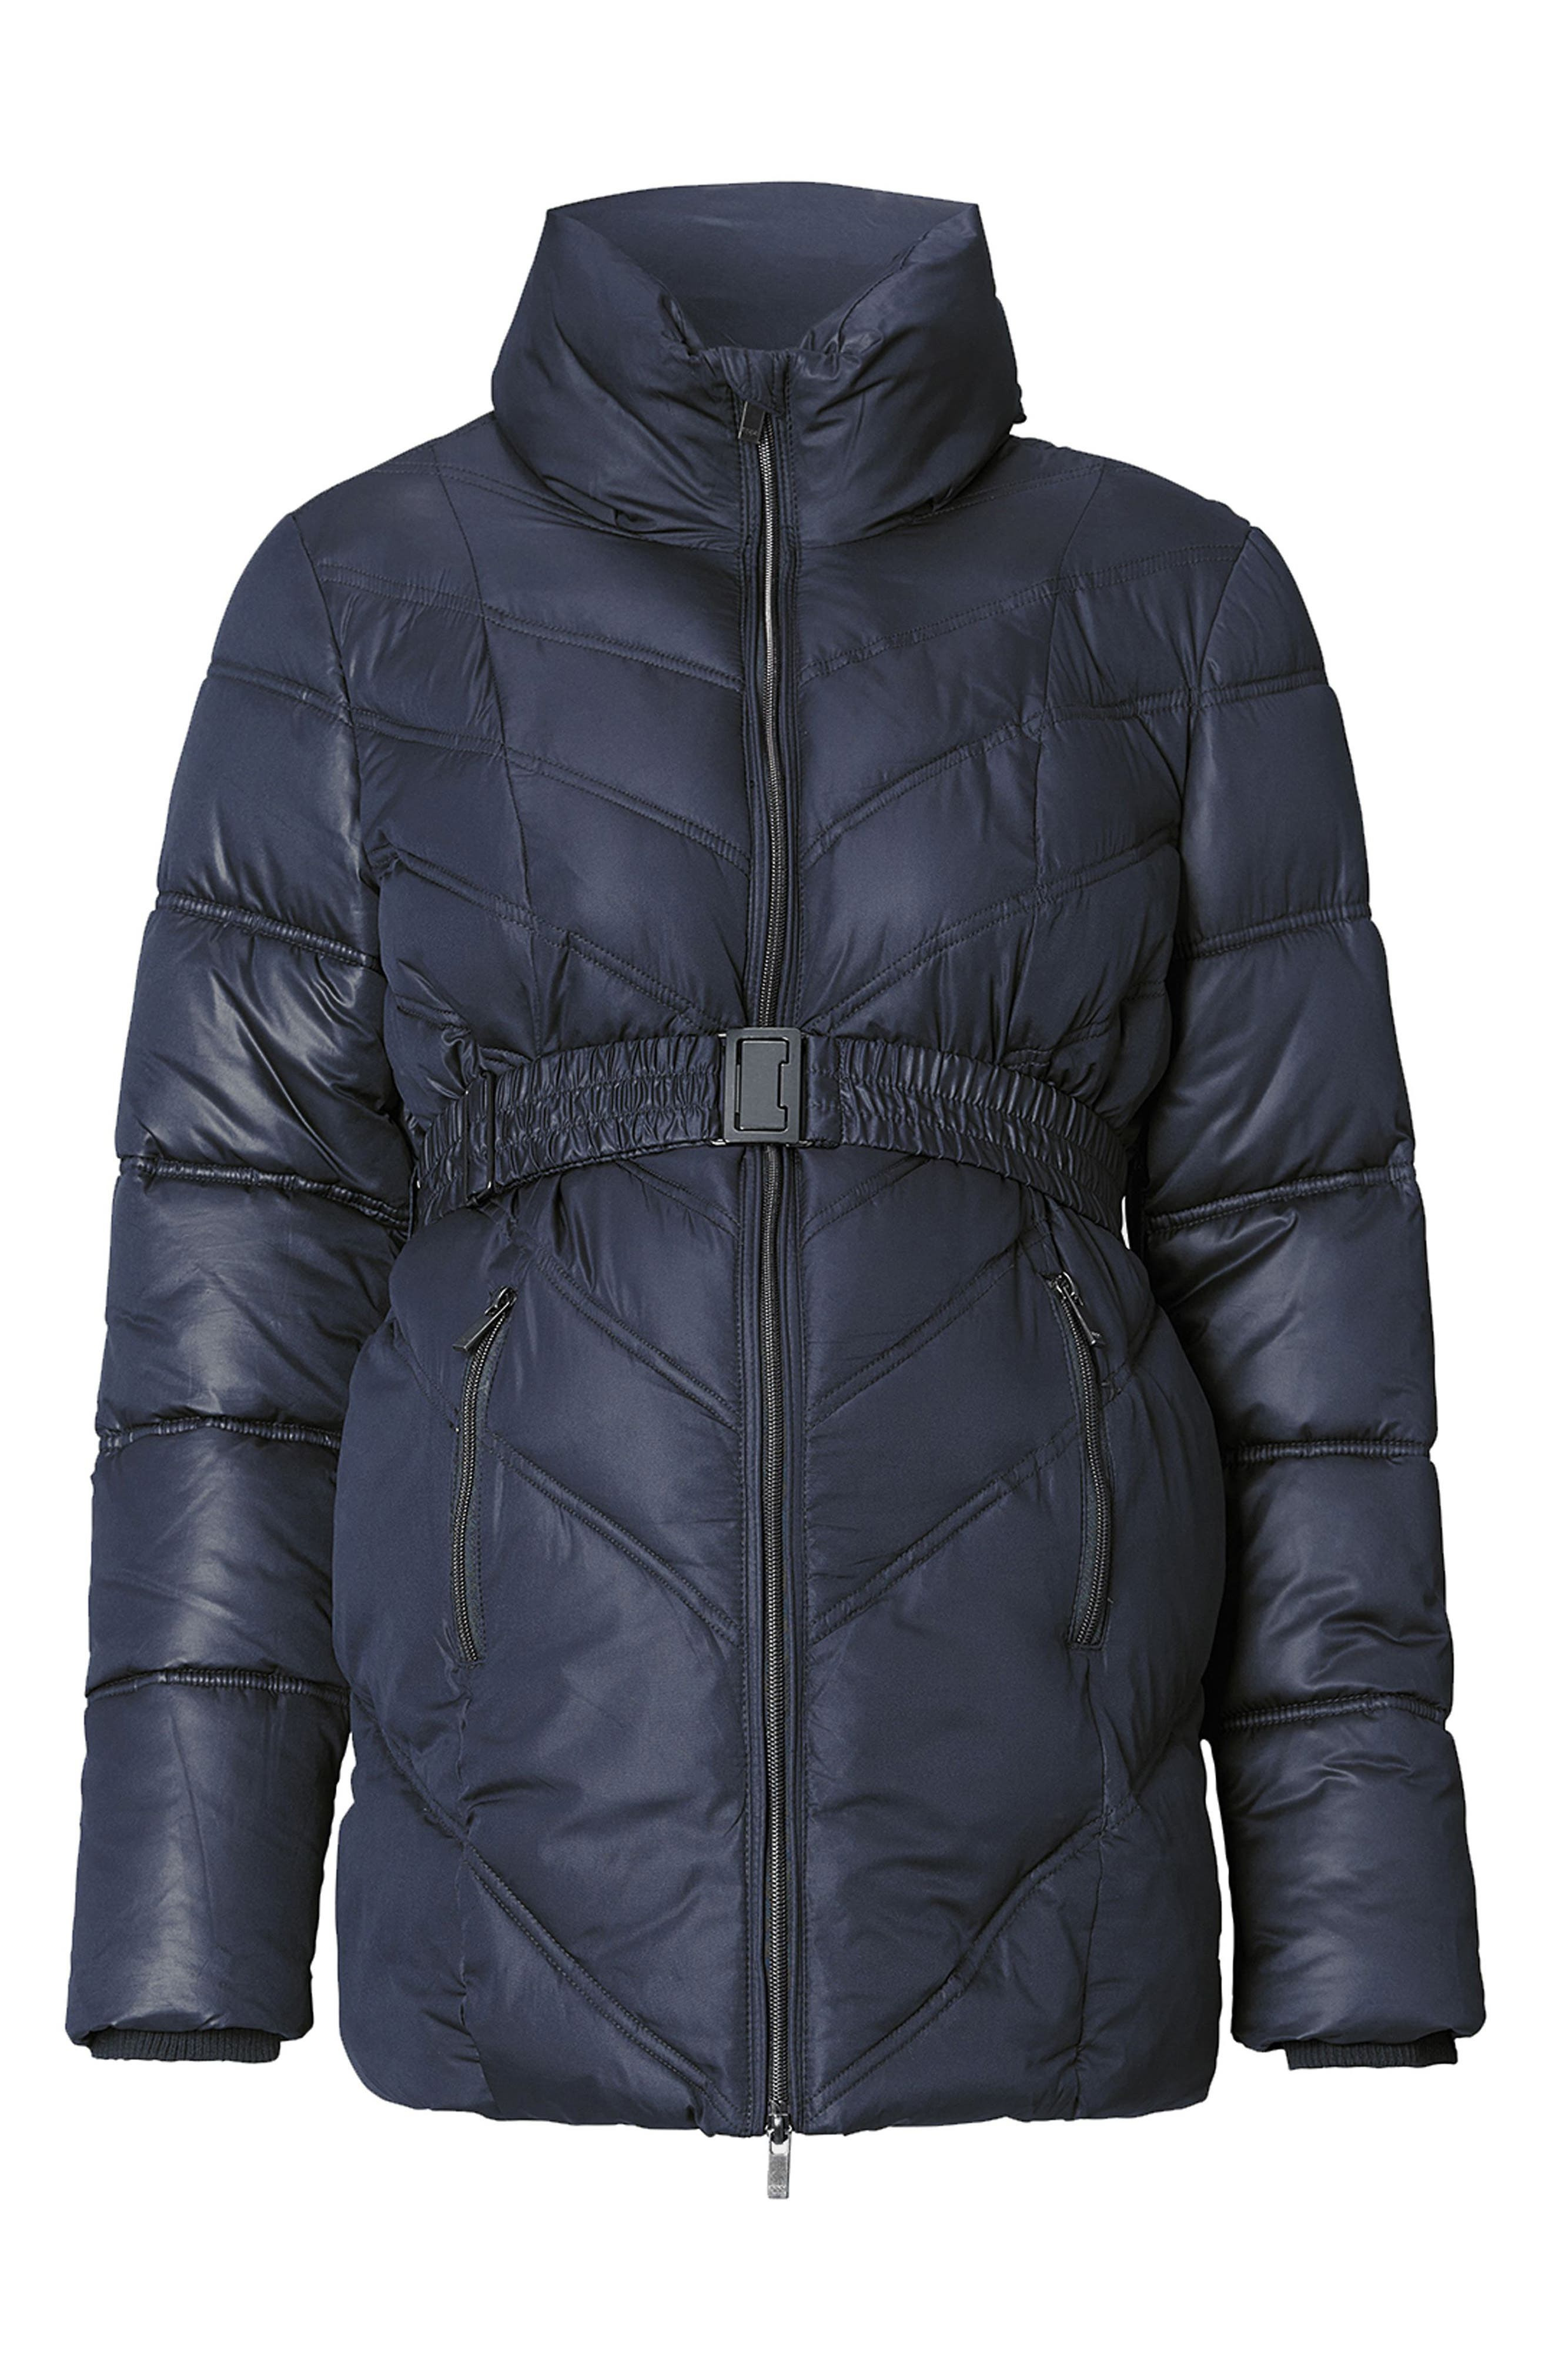 Lene Quilted Maternity Jacket,                             Main thumbnail 1, color,                             DARK BLUE